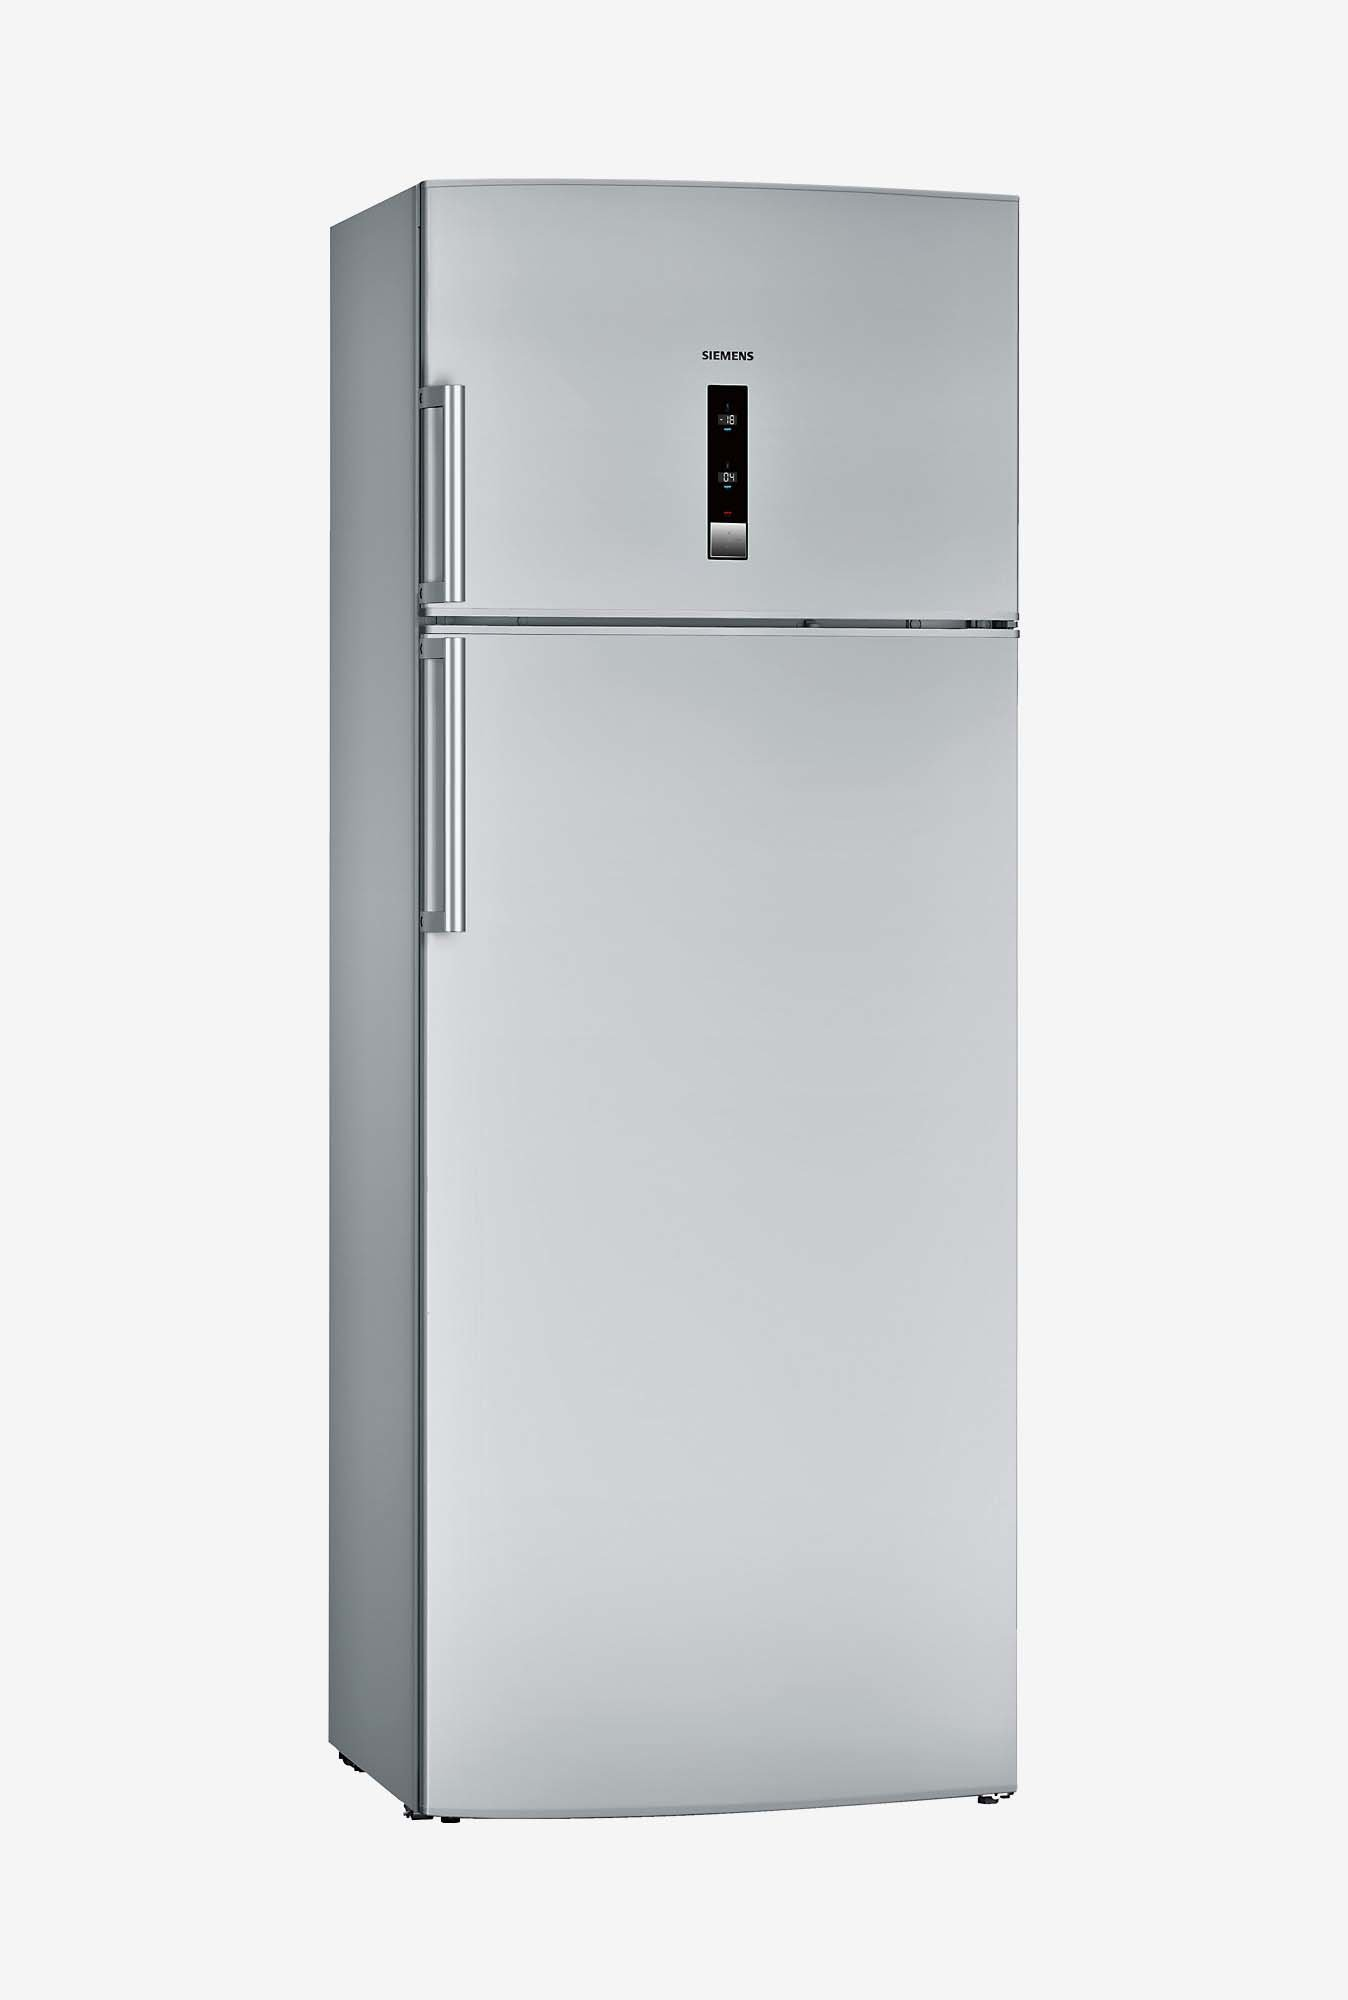 double refrigerator the french p en in canada refrigerators home with fridges door depot appliances instaview categories